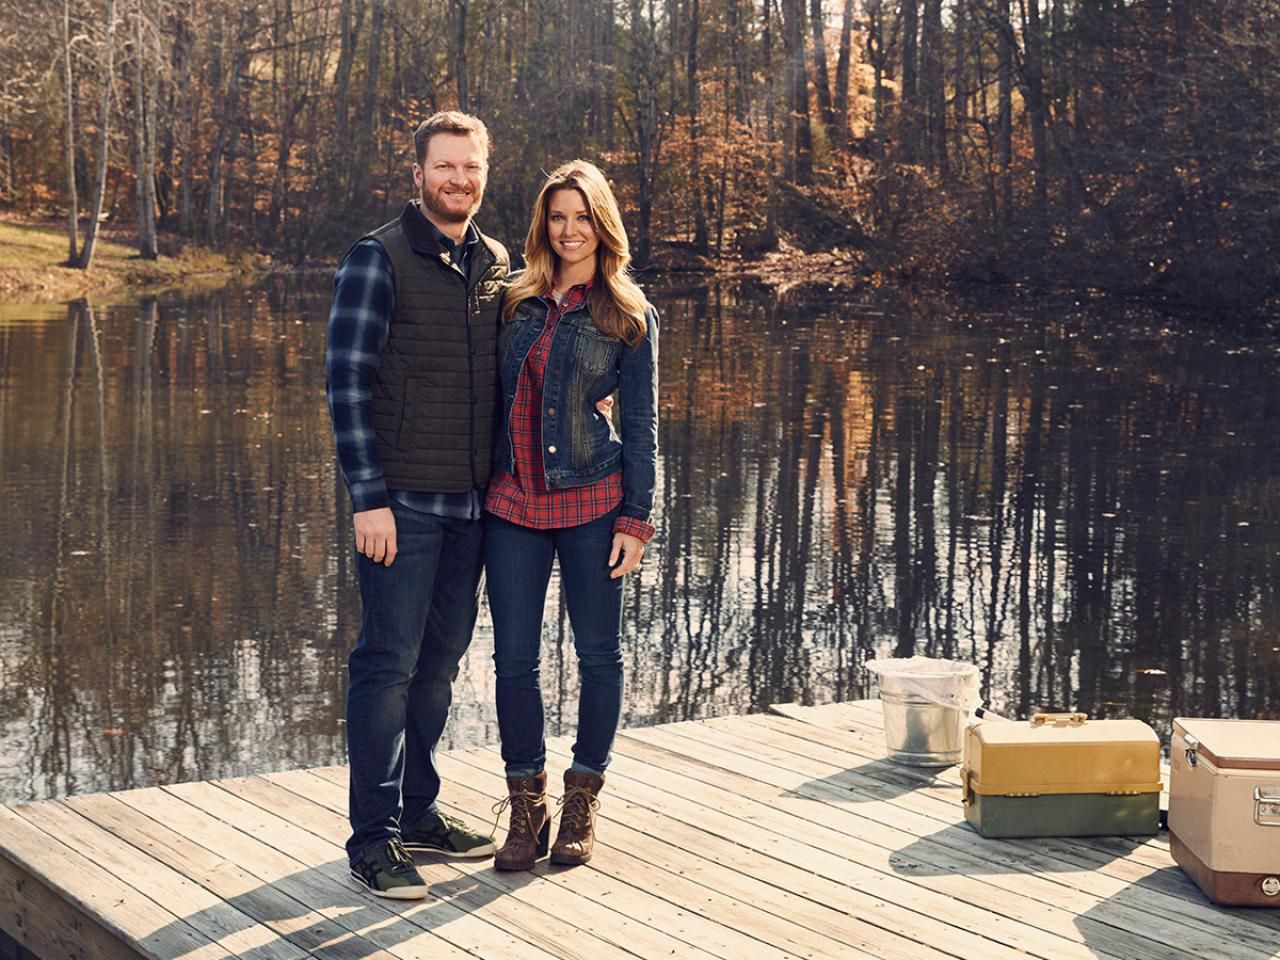 Dale Earnhardt Jr. and His Wife Amy Are Getting Their Own Design Show on DIY Network